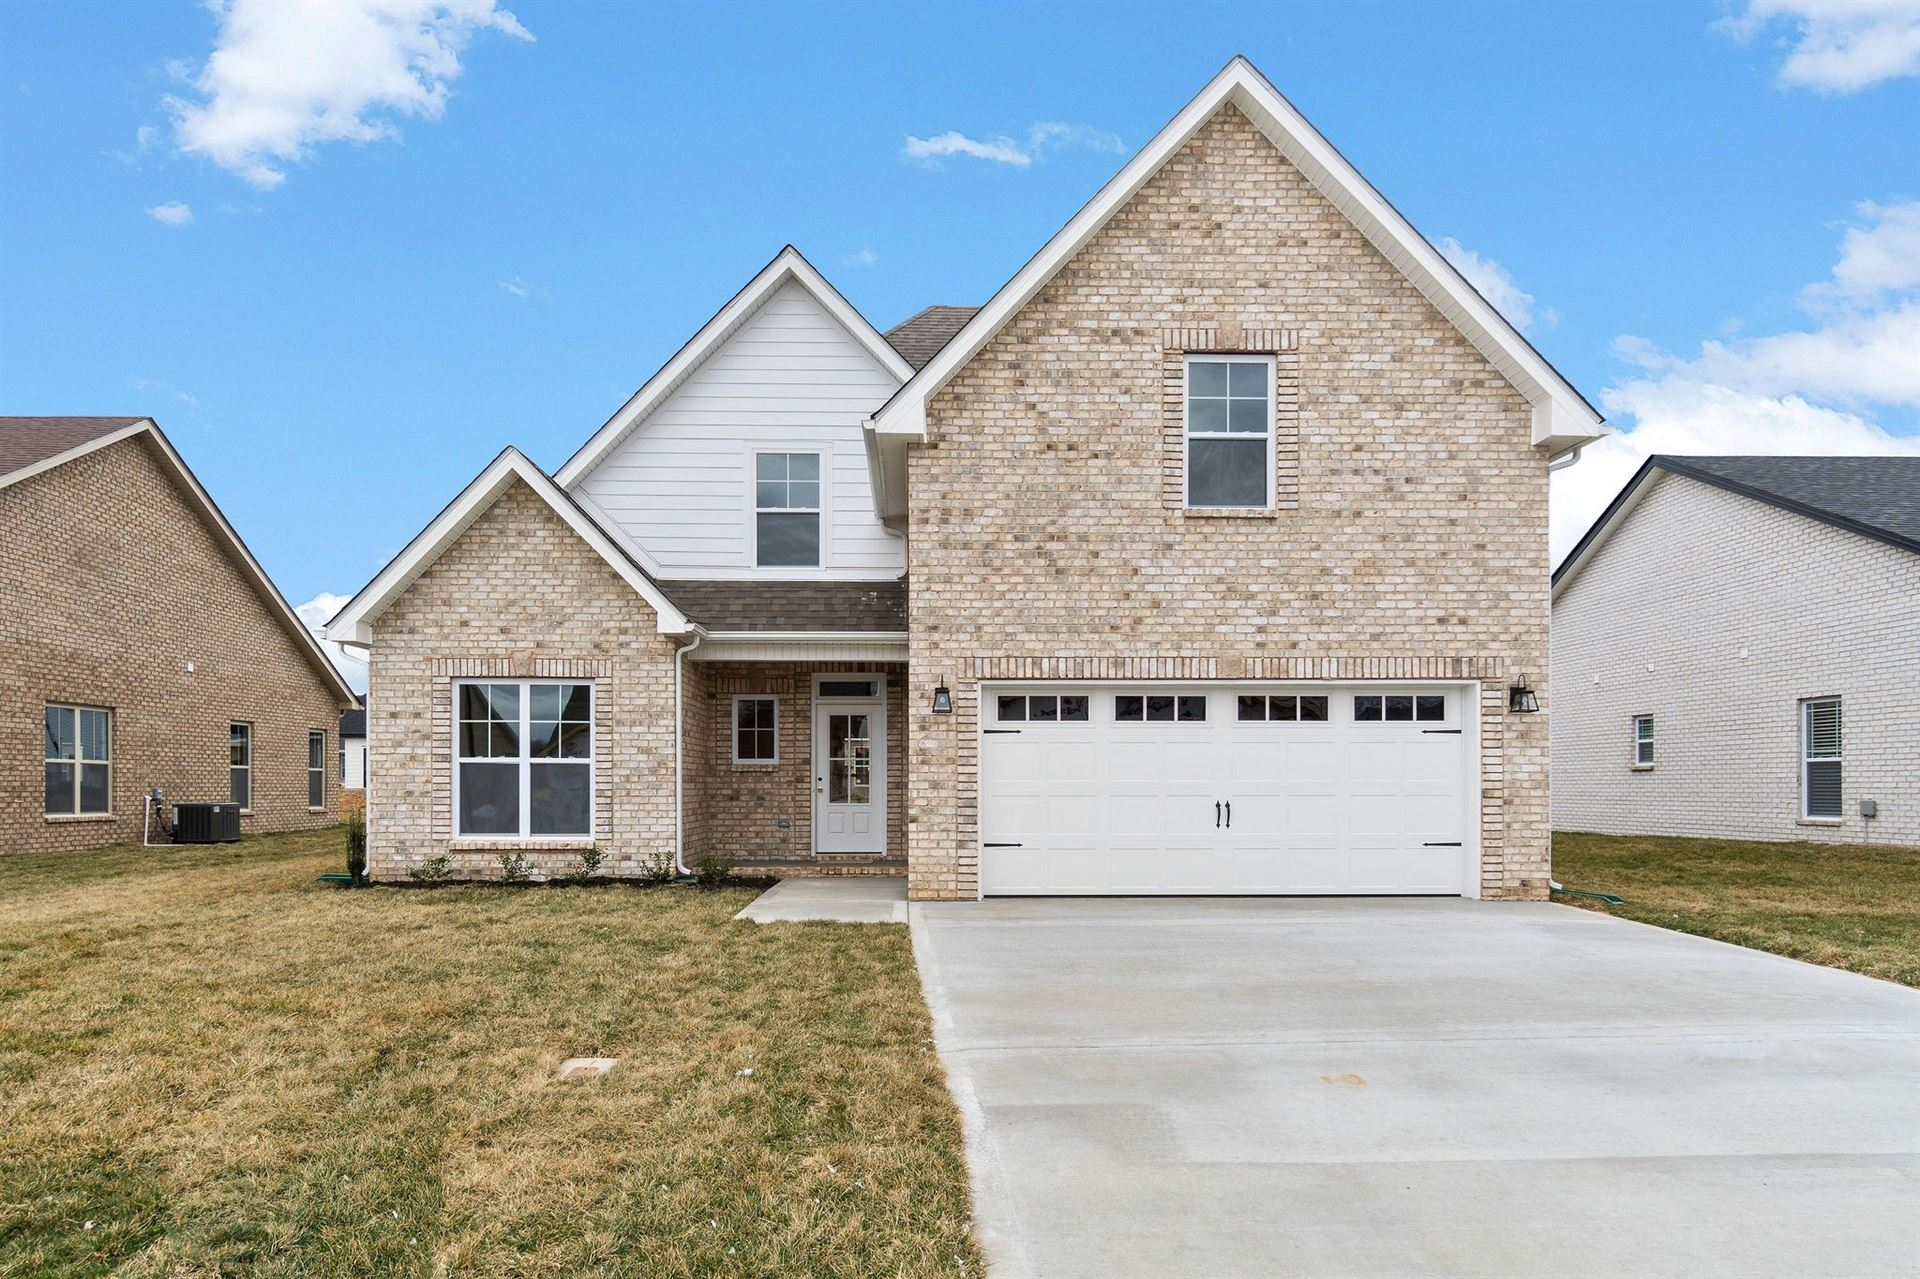 59 Hereford Farms, Clarksville, TN 37043 - MLS#: 2218527